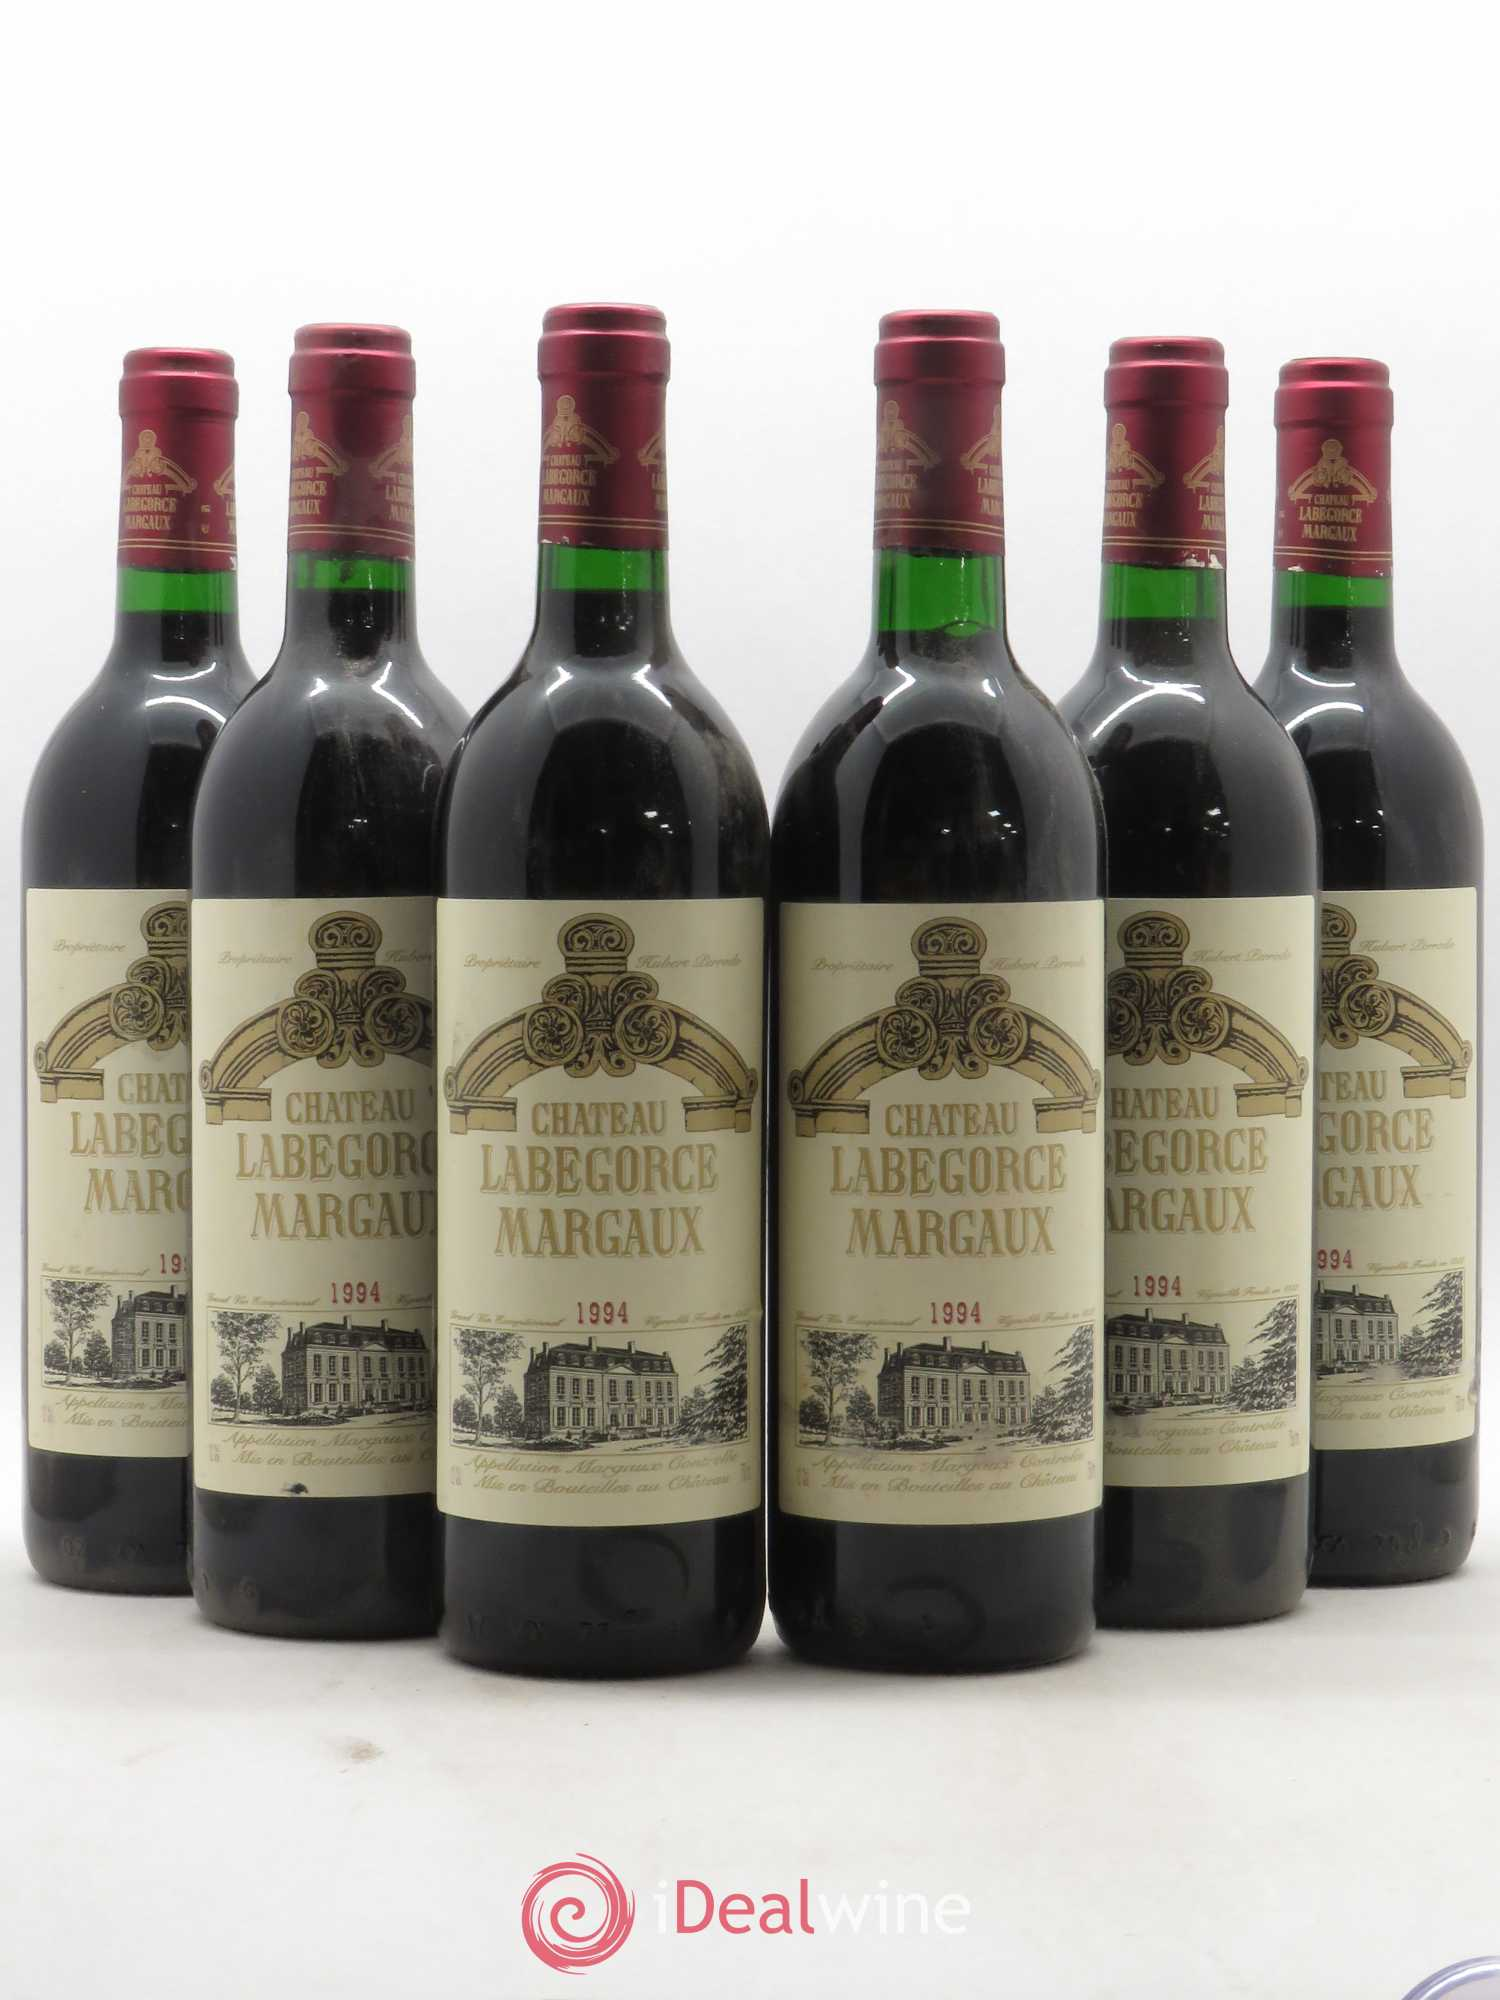 Château Labegorce Cru Bourgeois (no reserve) 1994 - Lot of 6 Bottles